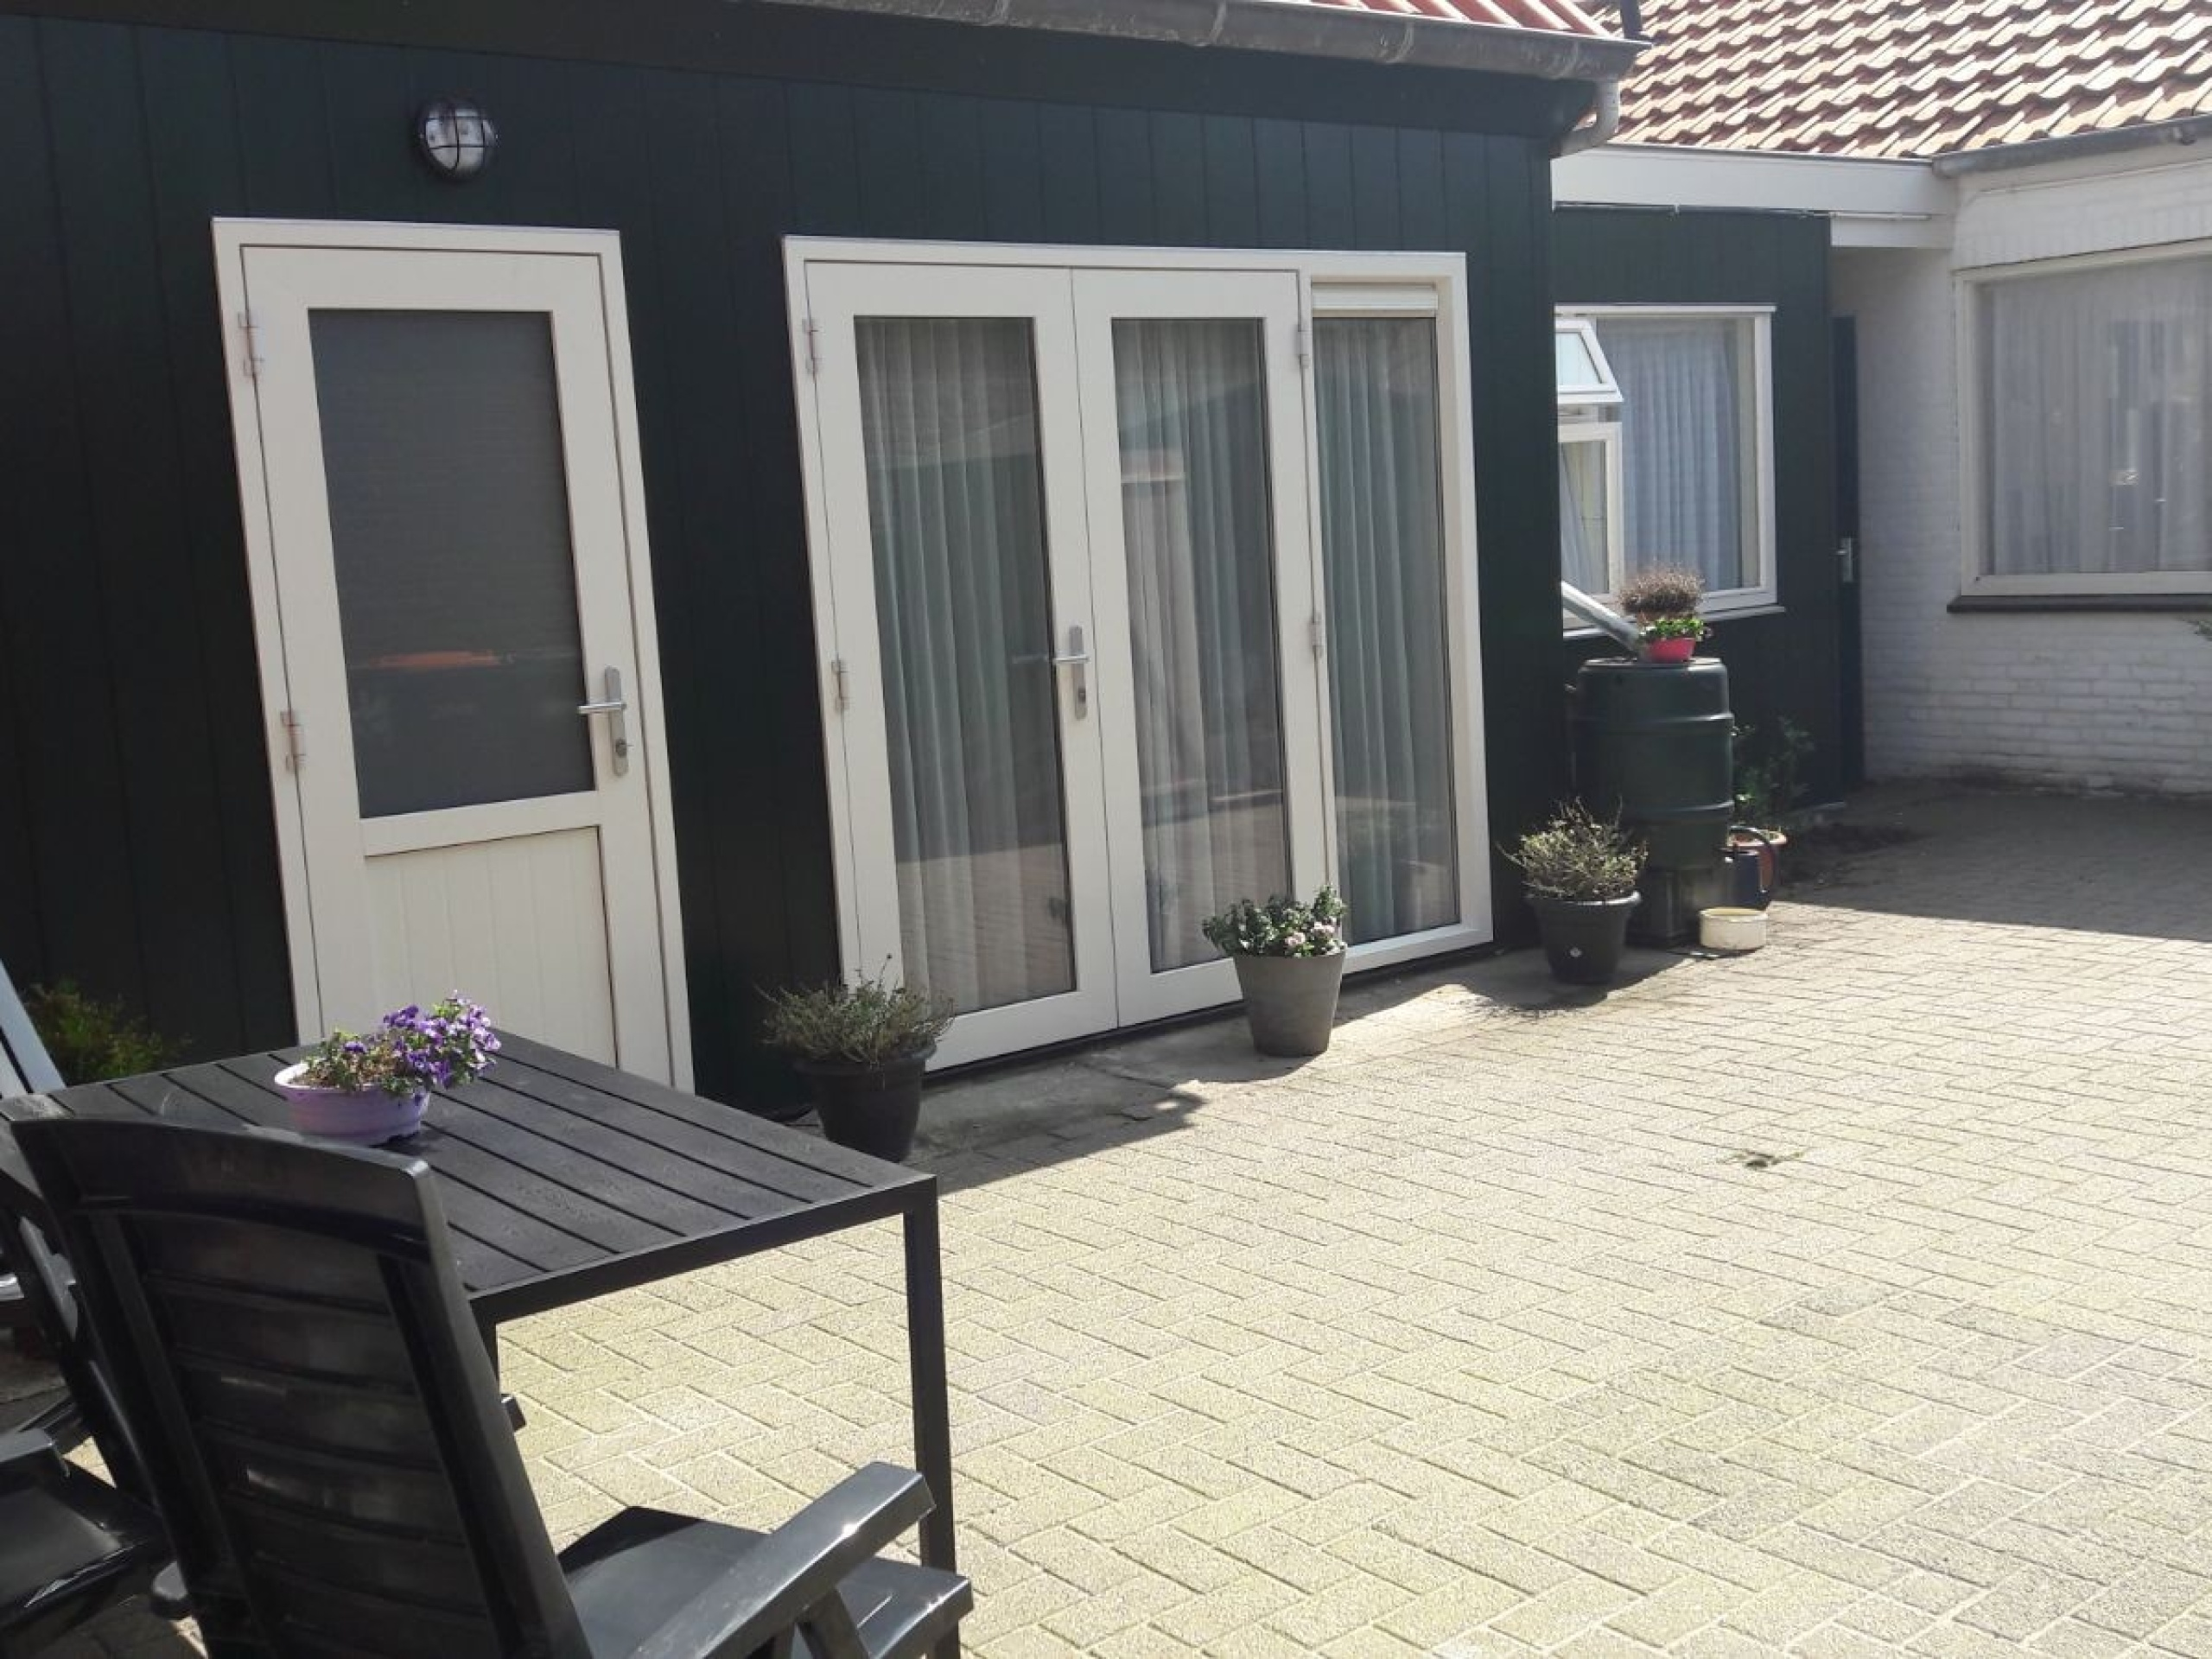 Nice holiday home ideally located within walking distance to the beach in De Koog